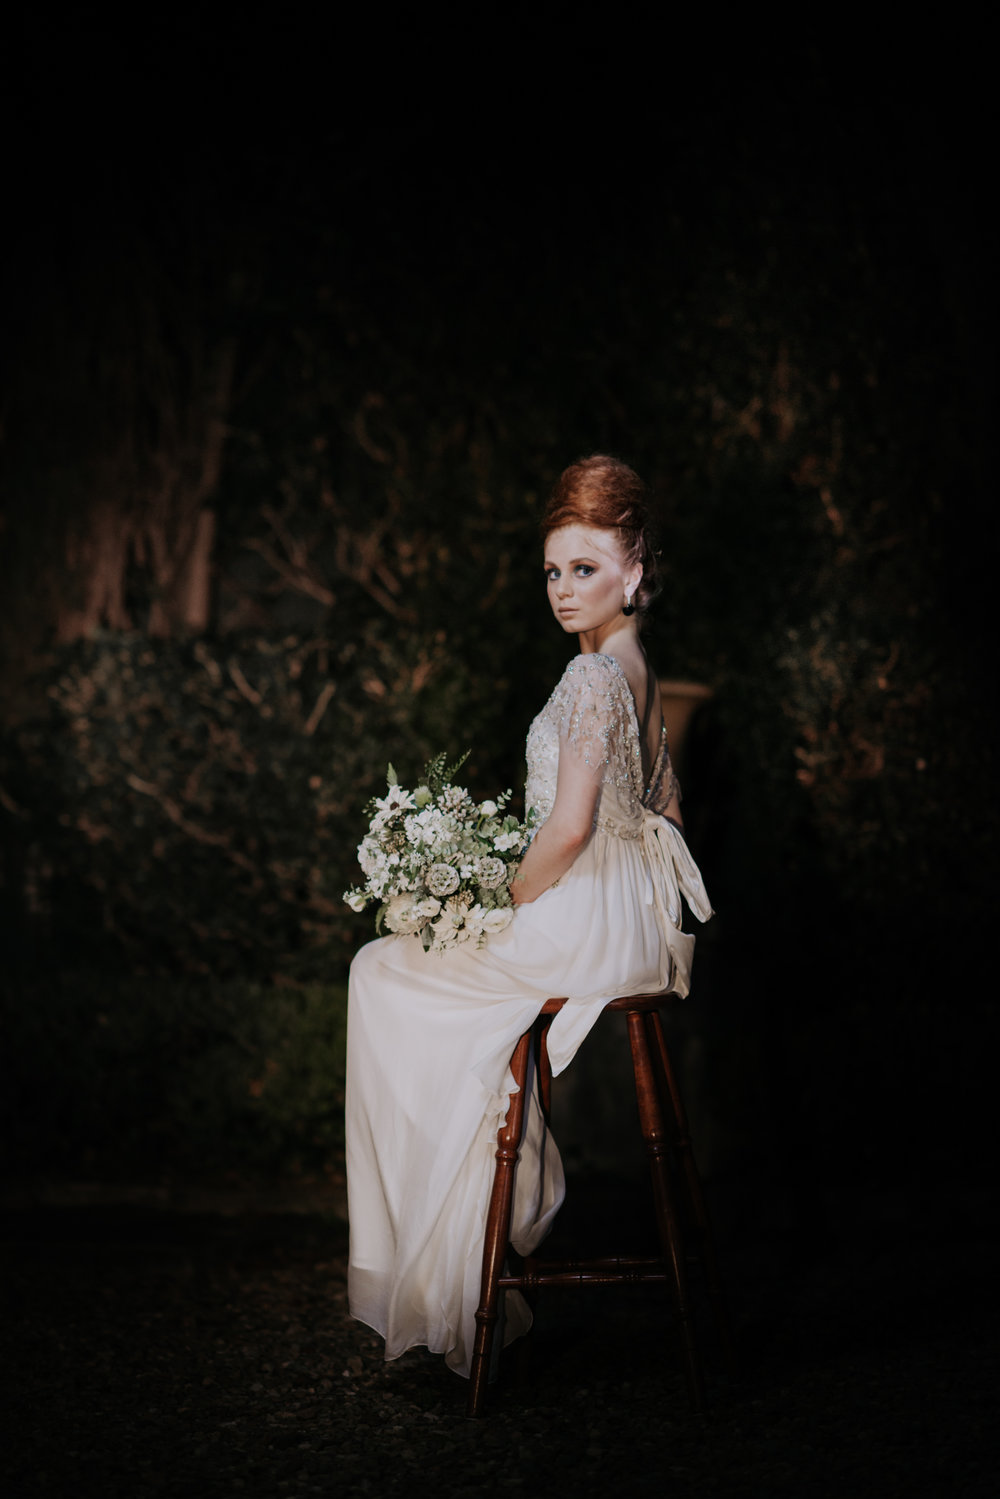 LOVELENSCAPES PHOTOGRAPHY X ANNA CAMPBELL BRIDAL X LEMAE MAKEUP ARTISTRY X BLOOMING LOVELY BOUQUETS X ERIN LIGHTFOOT X LITTLE WHITE COUTURE • 37.jpg